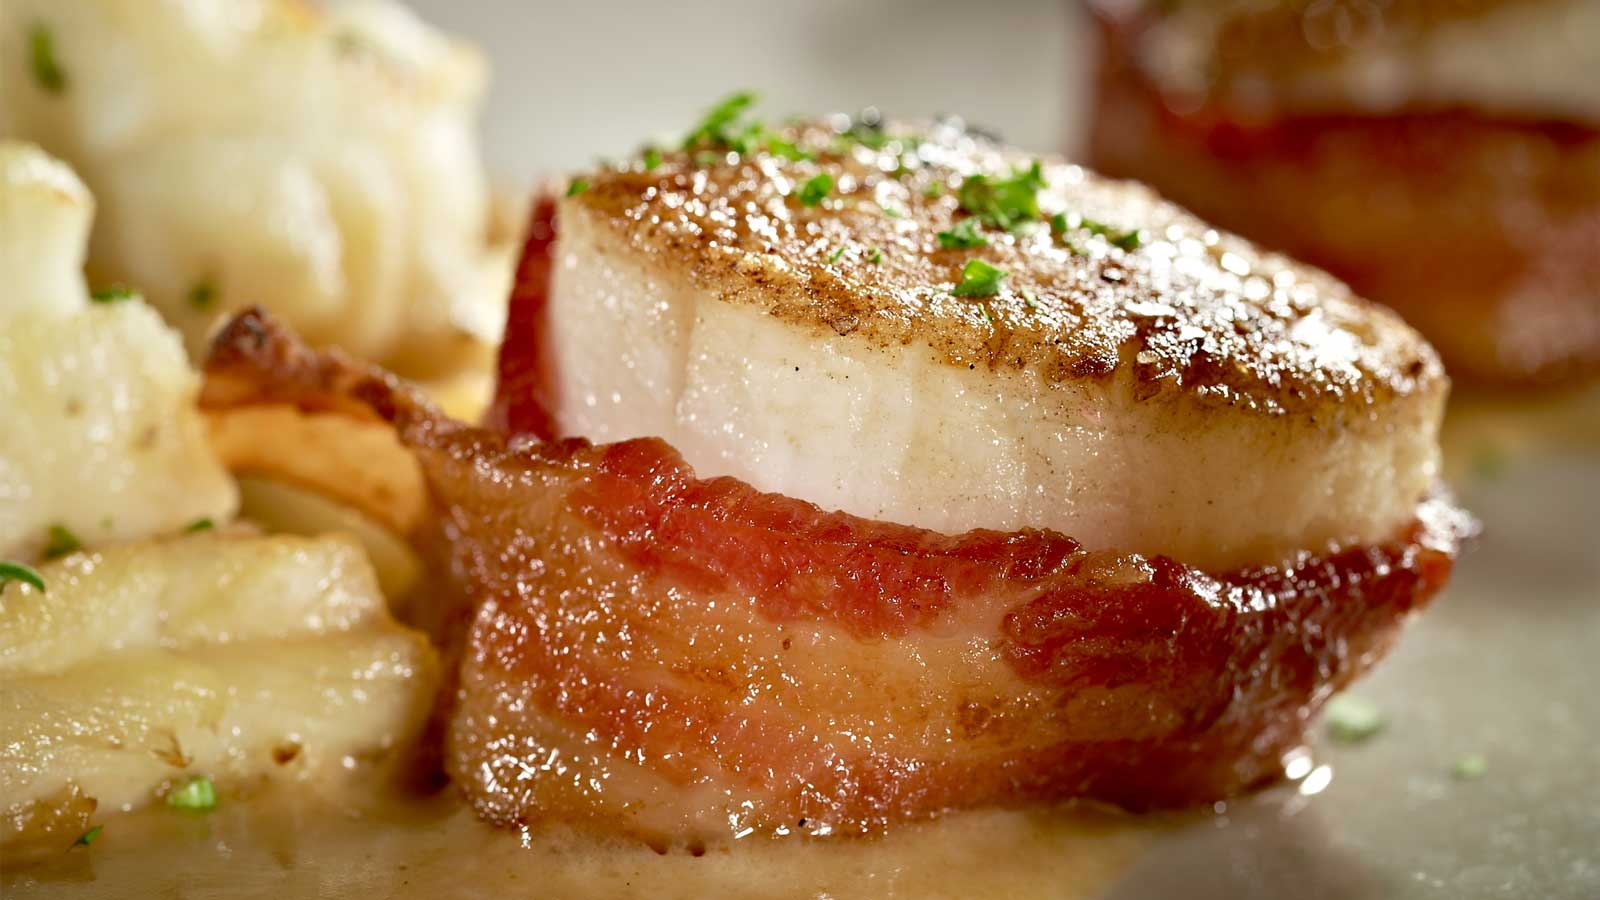 Mo's-scallop-with-bacon-scallops.jpg